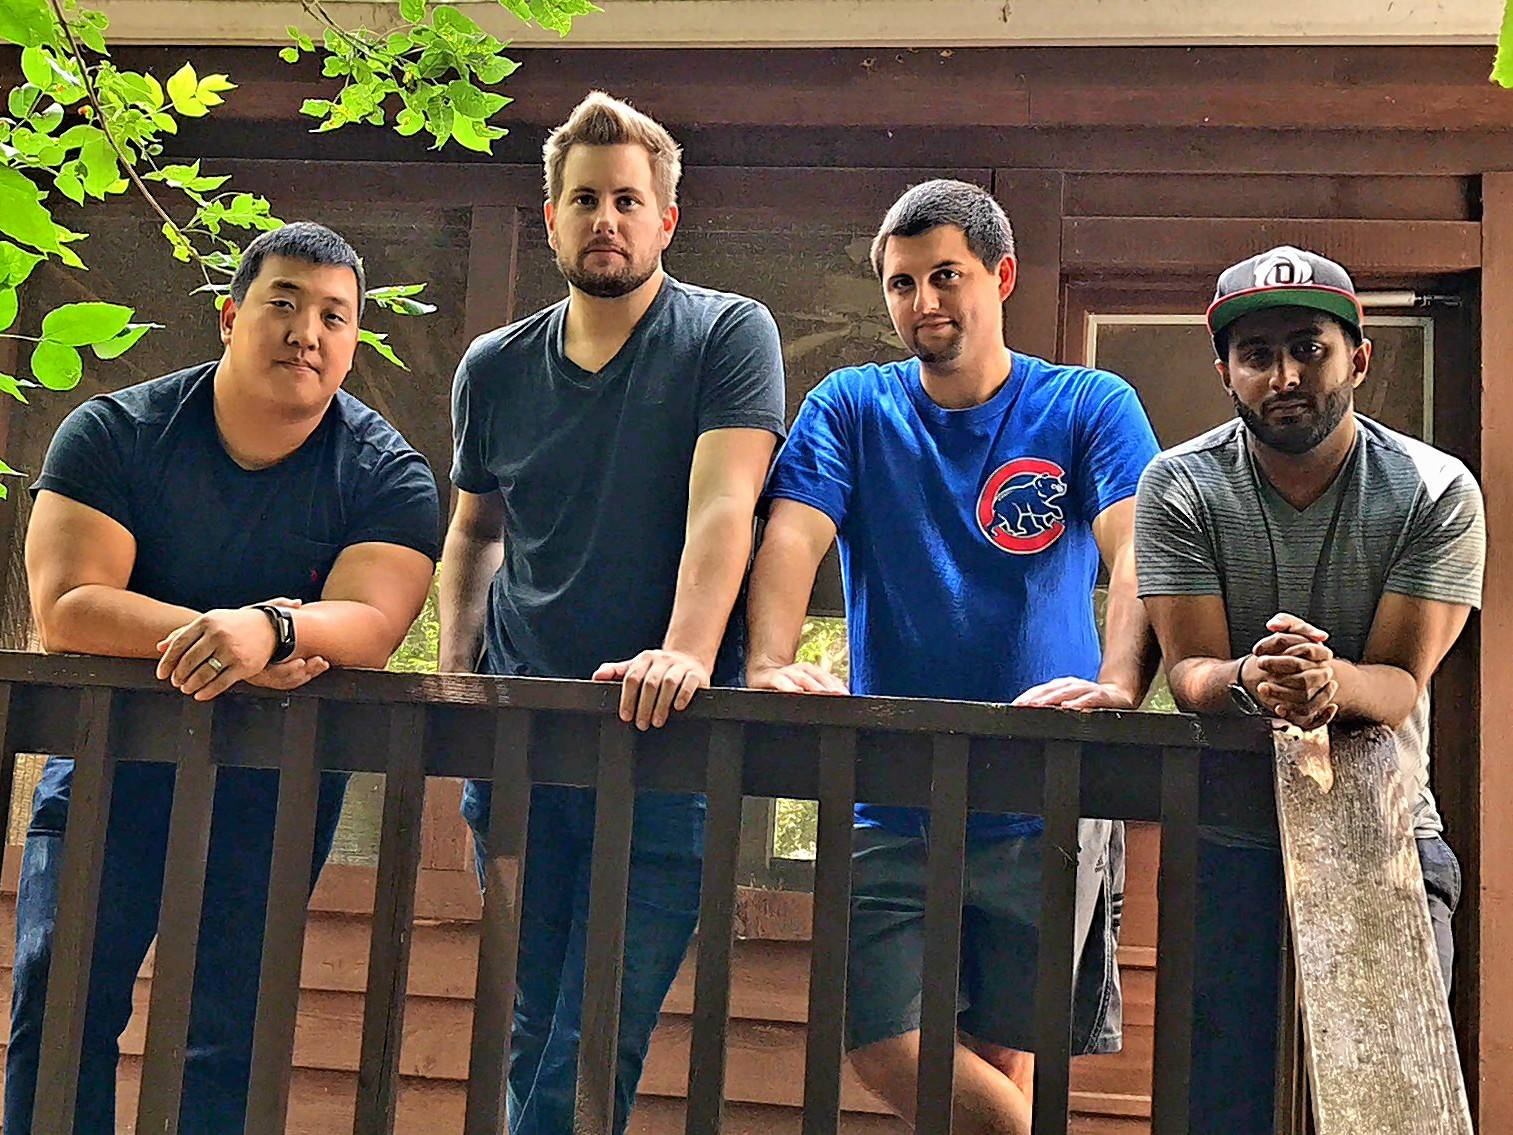 Alternative rock band Seven Corners headlines the Skyline Music Concert Series Friday, Feb. 23, at BaseCamp Pub.